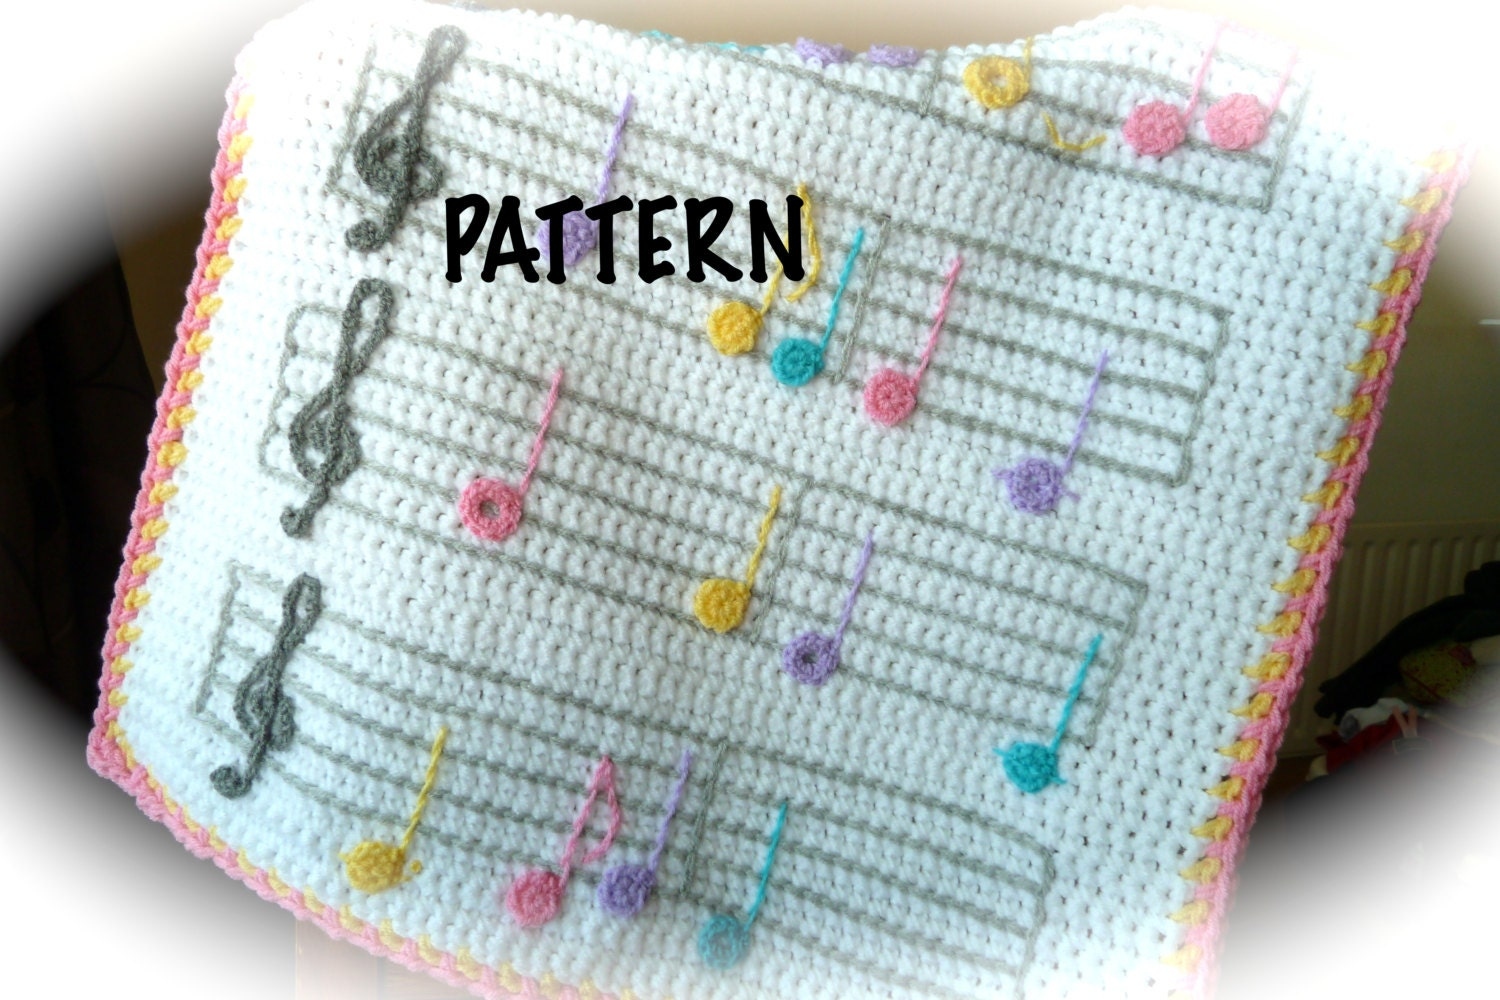 Free Crochet Patterns For Music Notes : PATTERN Musical Crochet Blanket Pattern